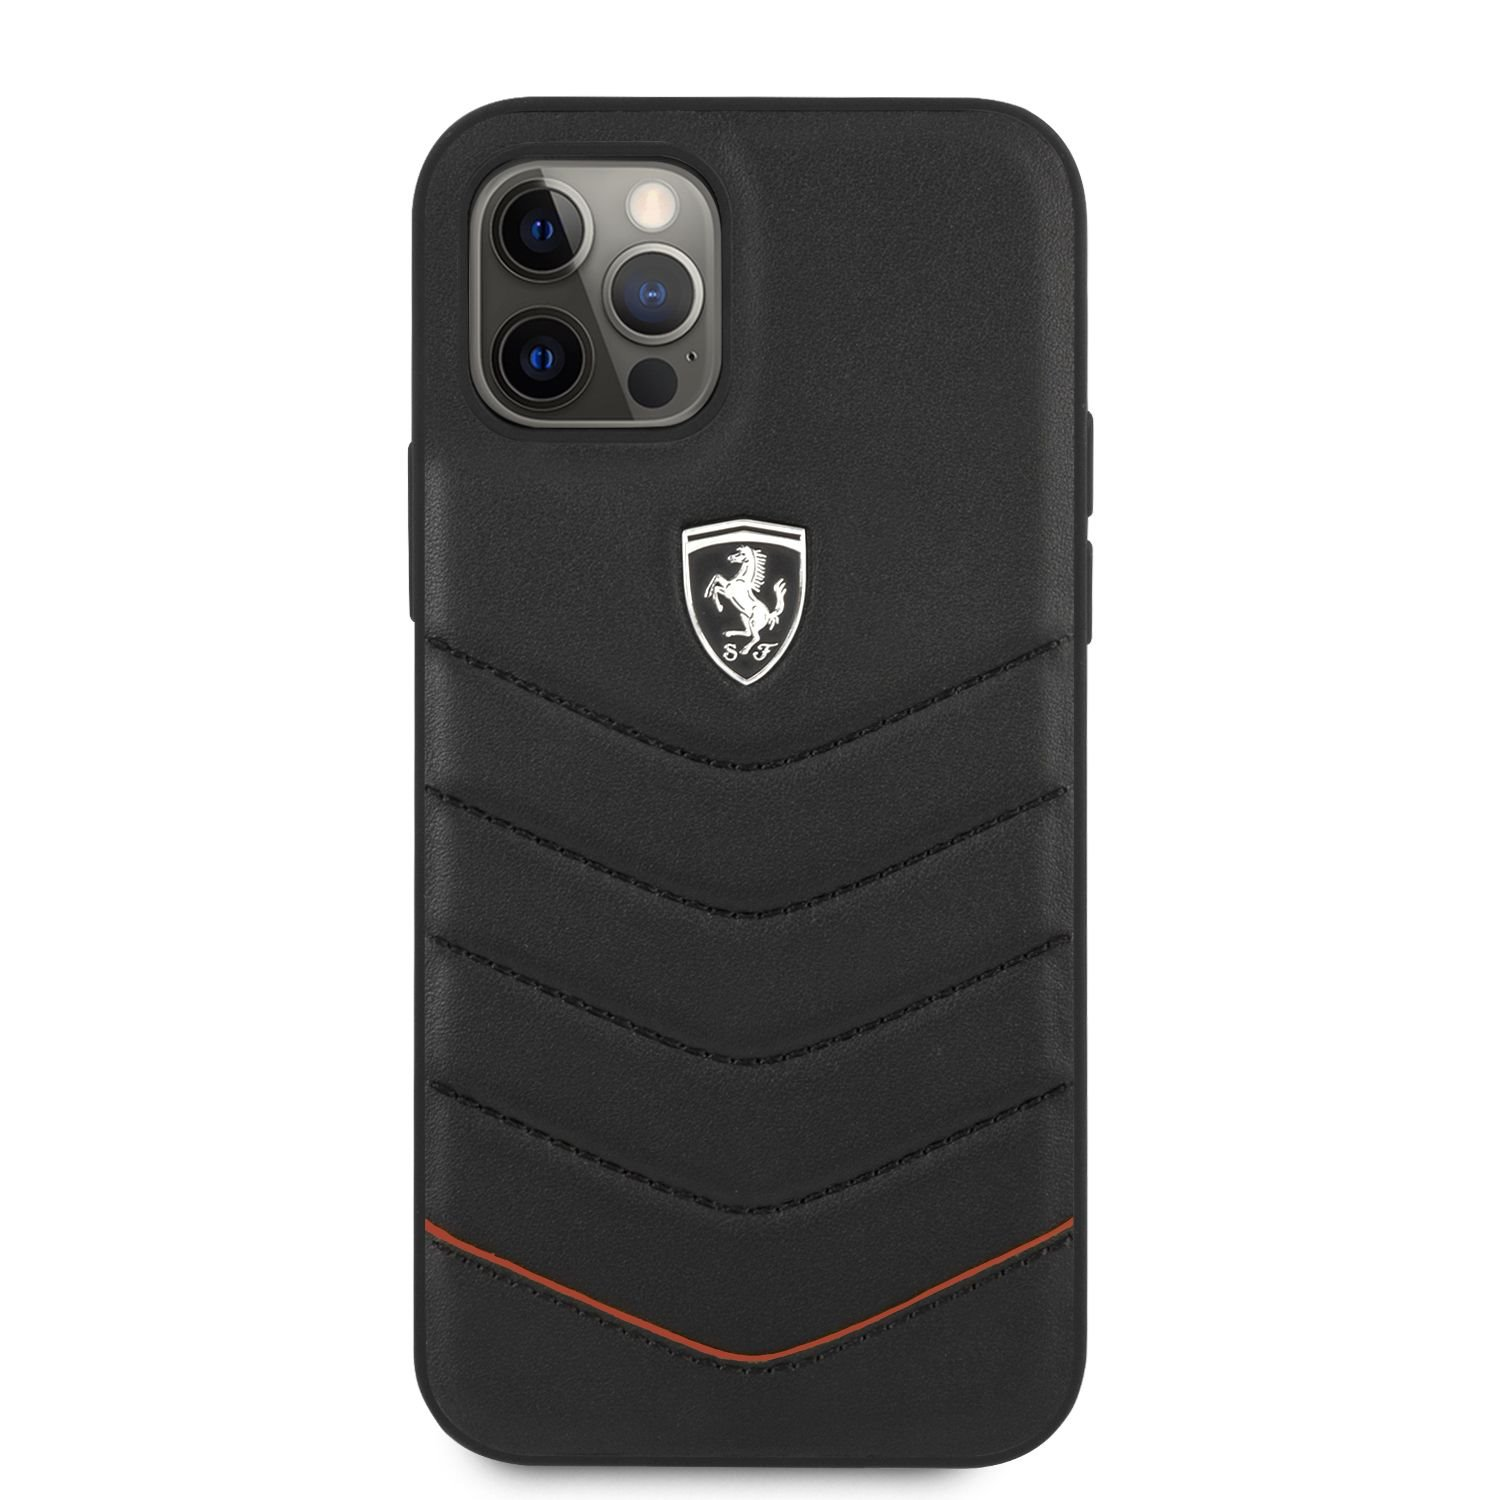 FEHQUHCP12LBK Ferrari Off Track Leather Quilted Zadní Kryt pro iPhone 12 Pro Max 6.7 Black 3700740479490